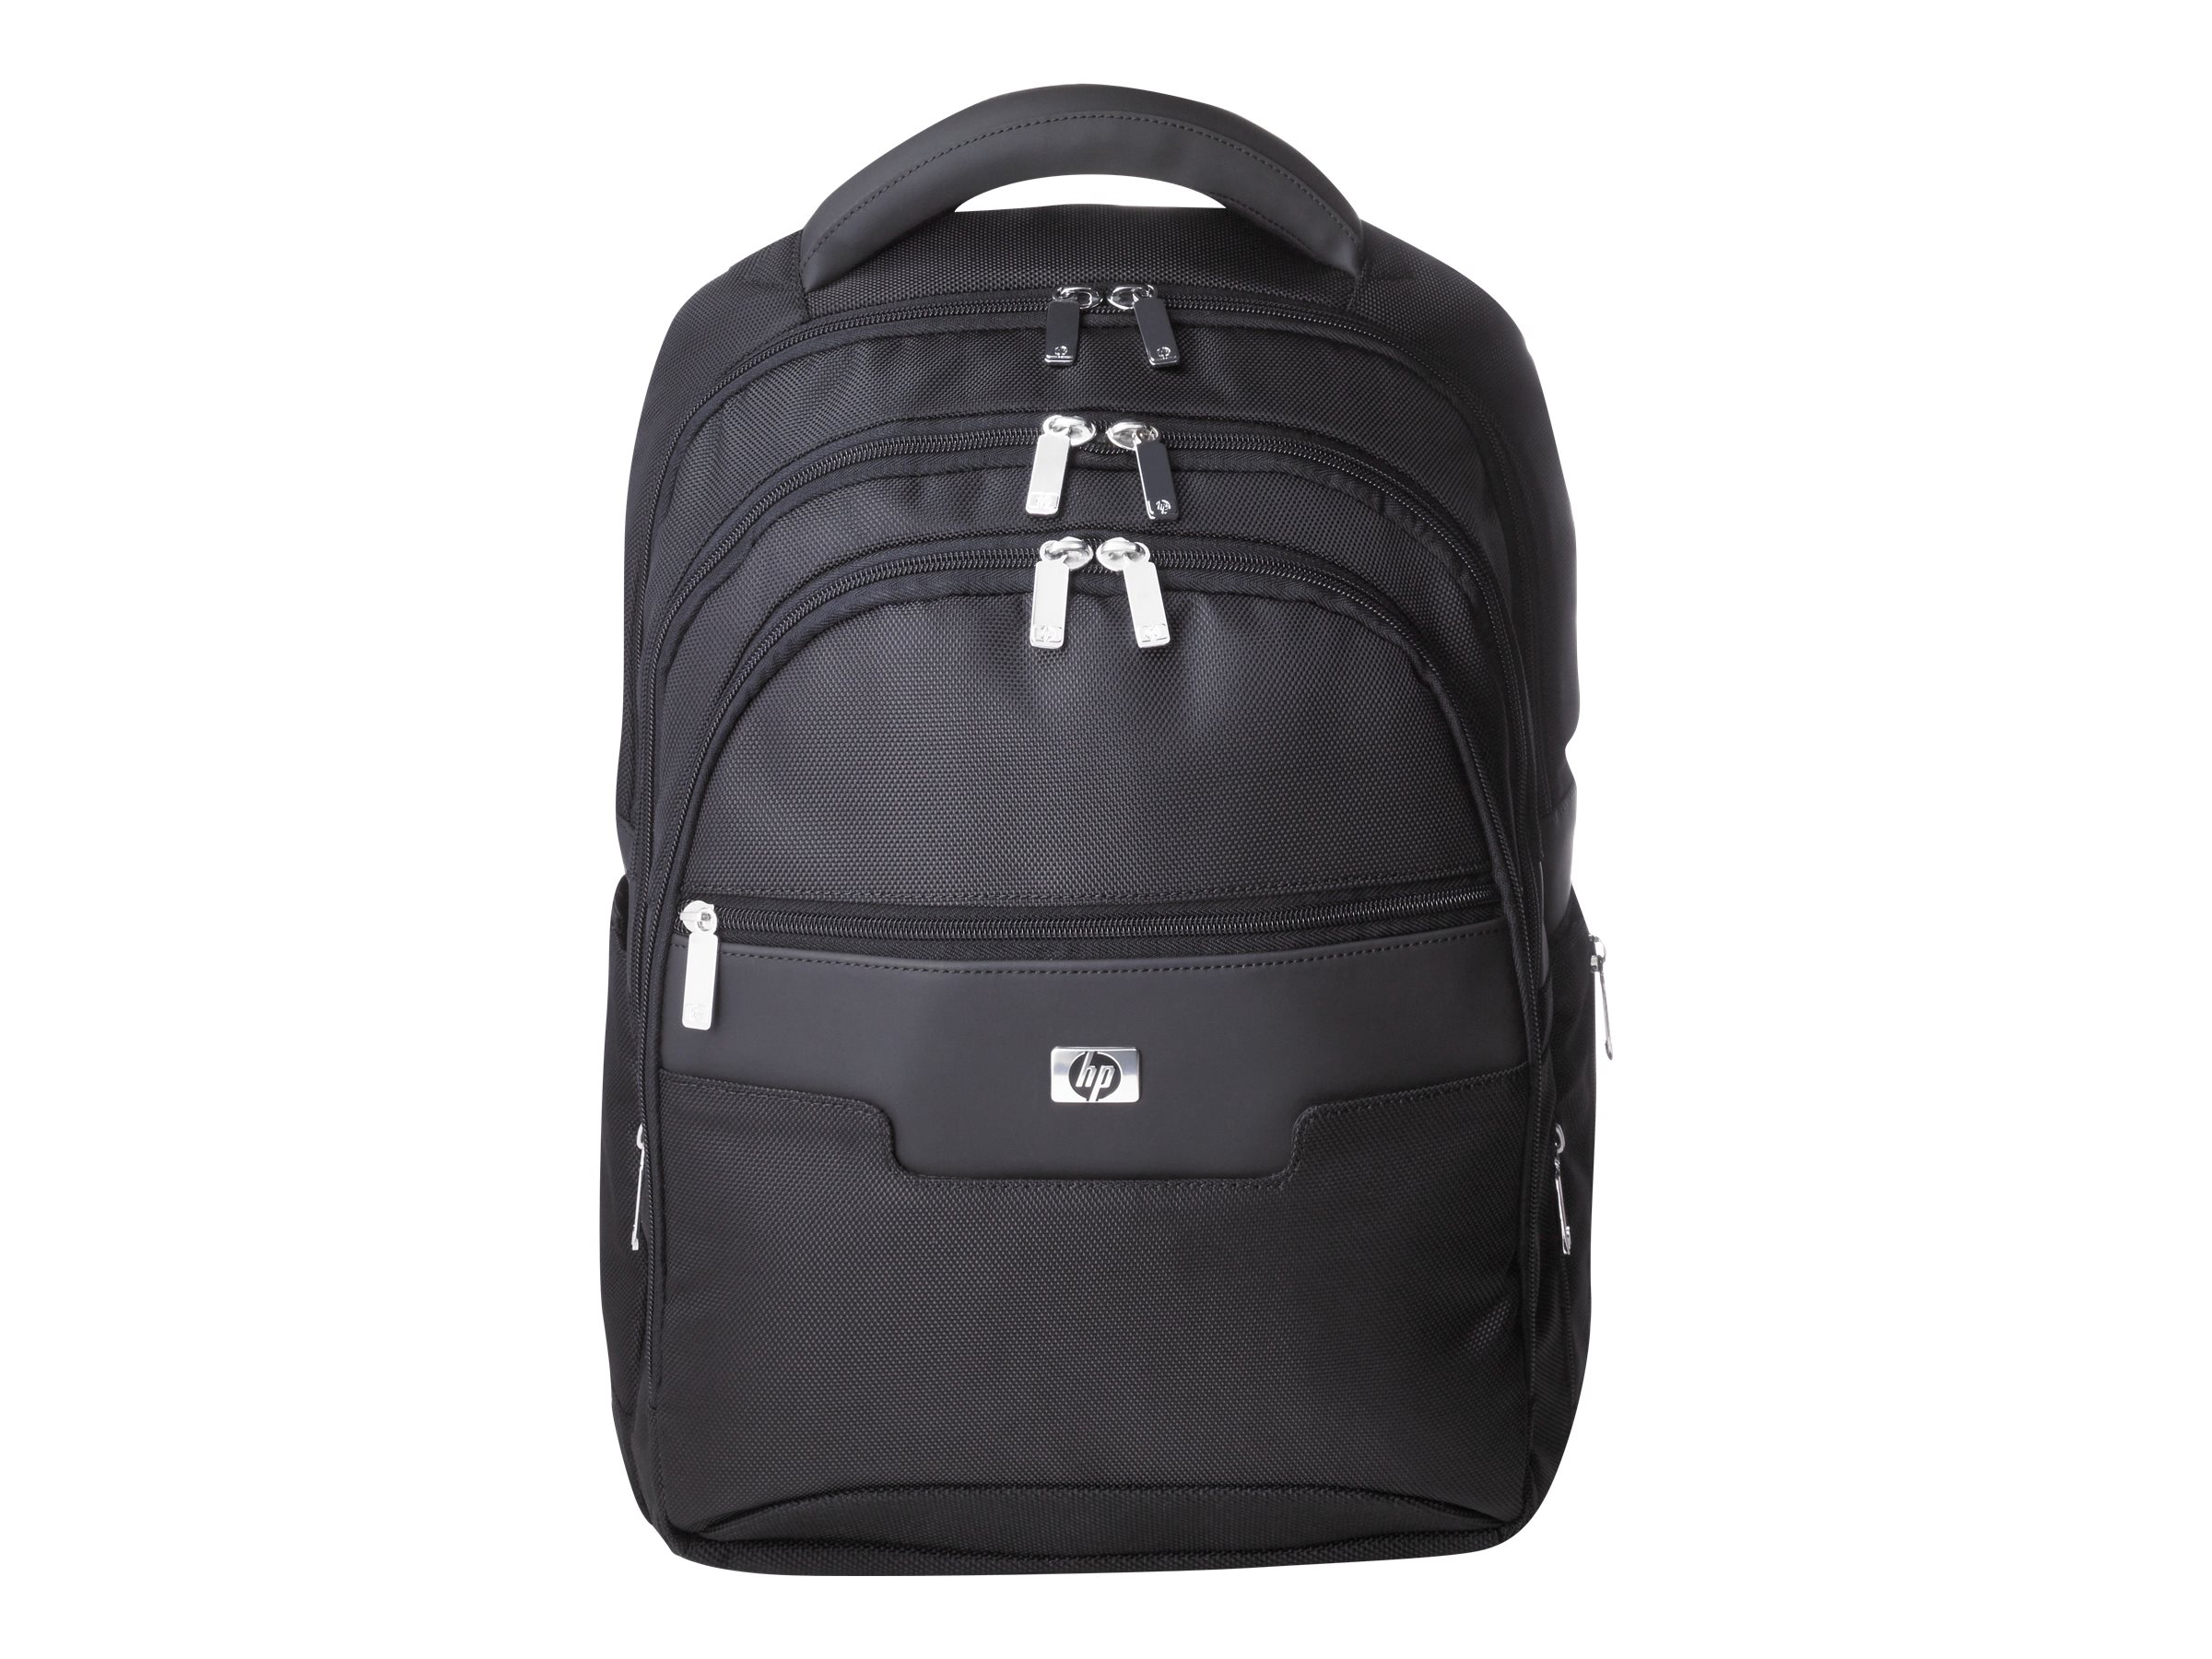 HP Deluxe Nylon Backpack notebook carrying backpack